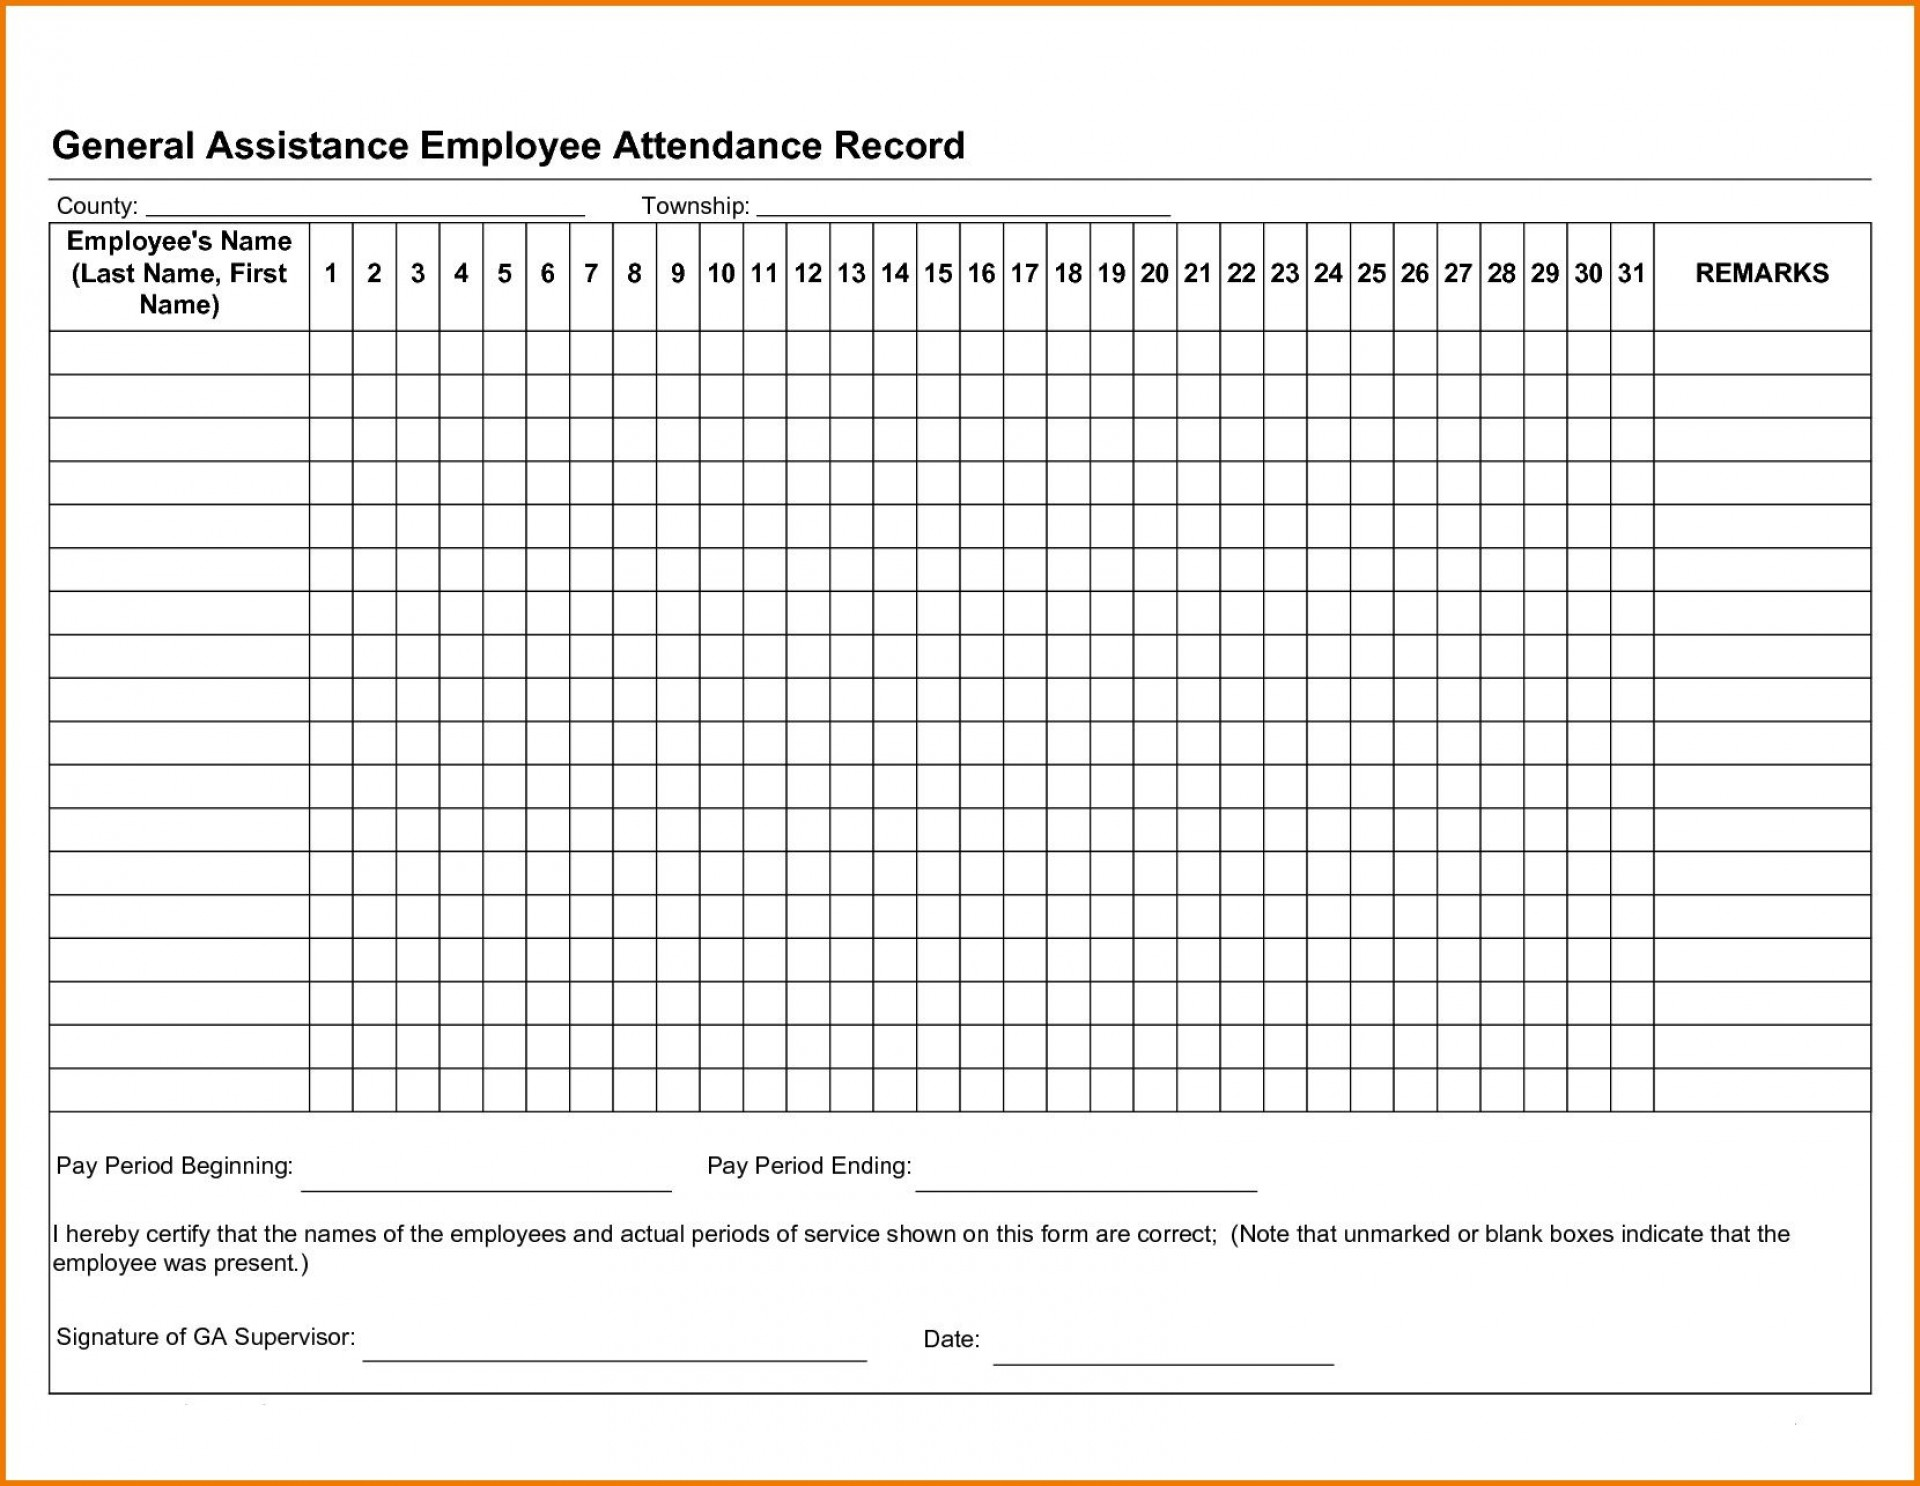 001 Shocking Employee Attendance Record Template Excel Idea  Free Download With Time1920